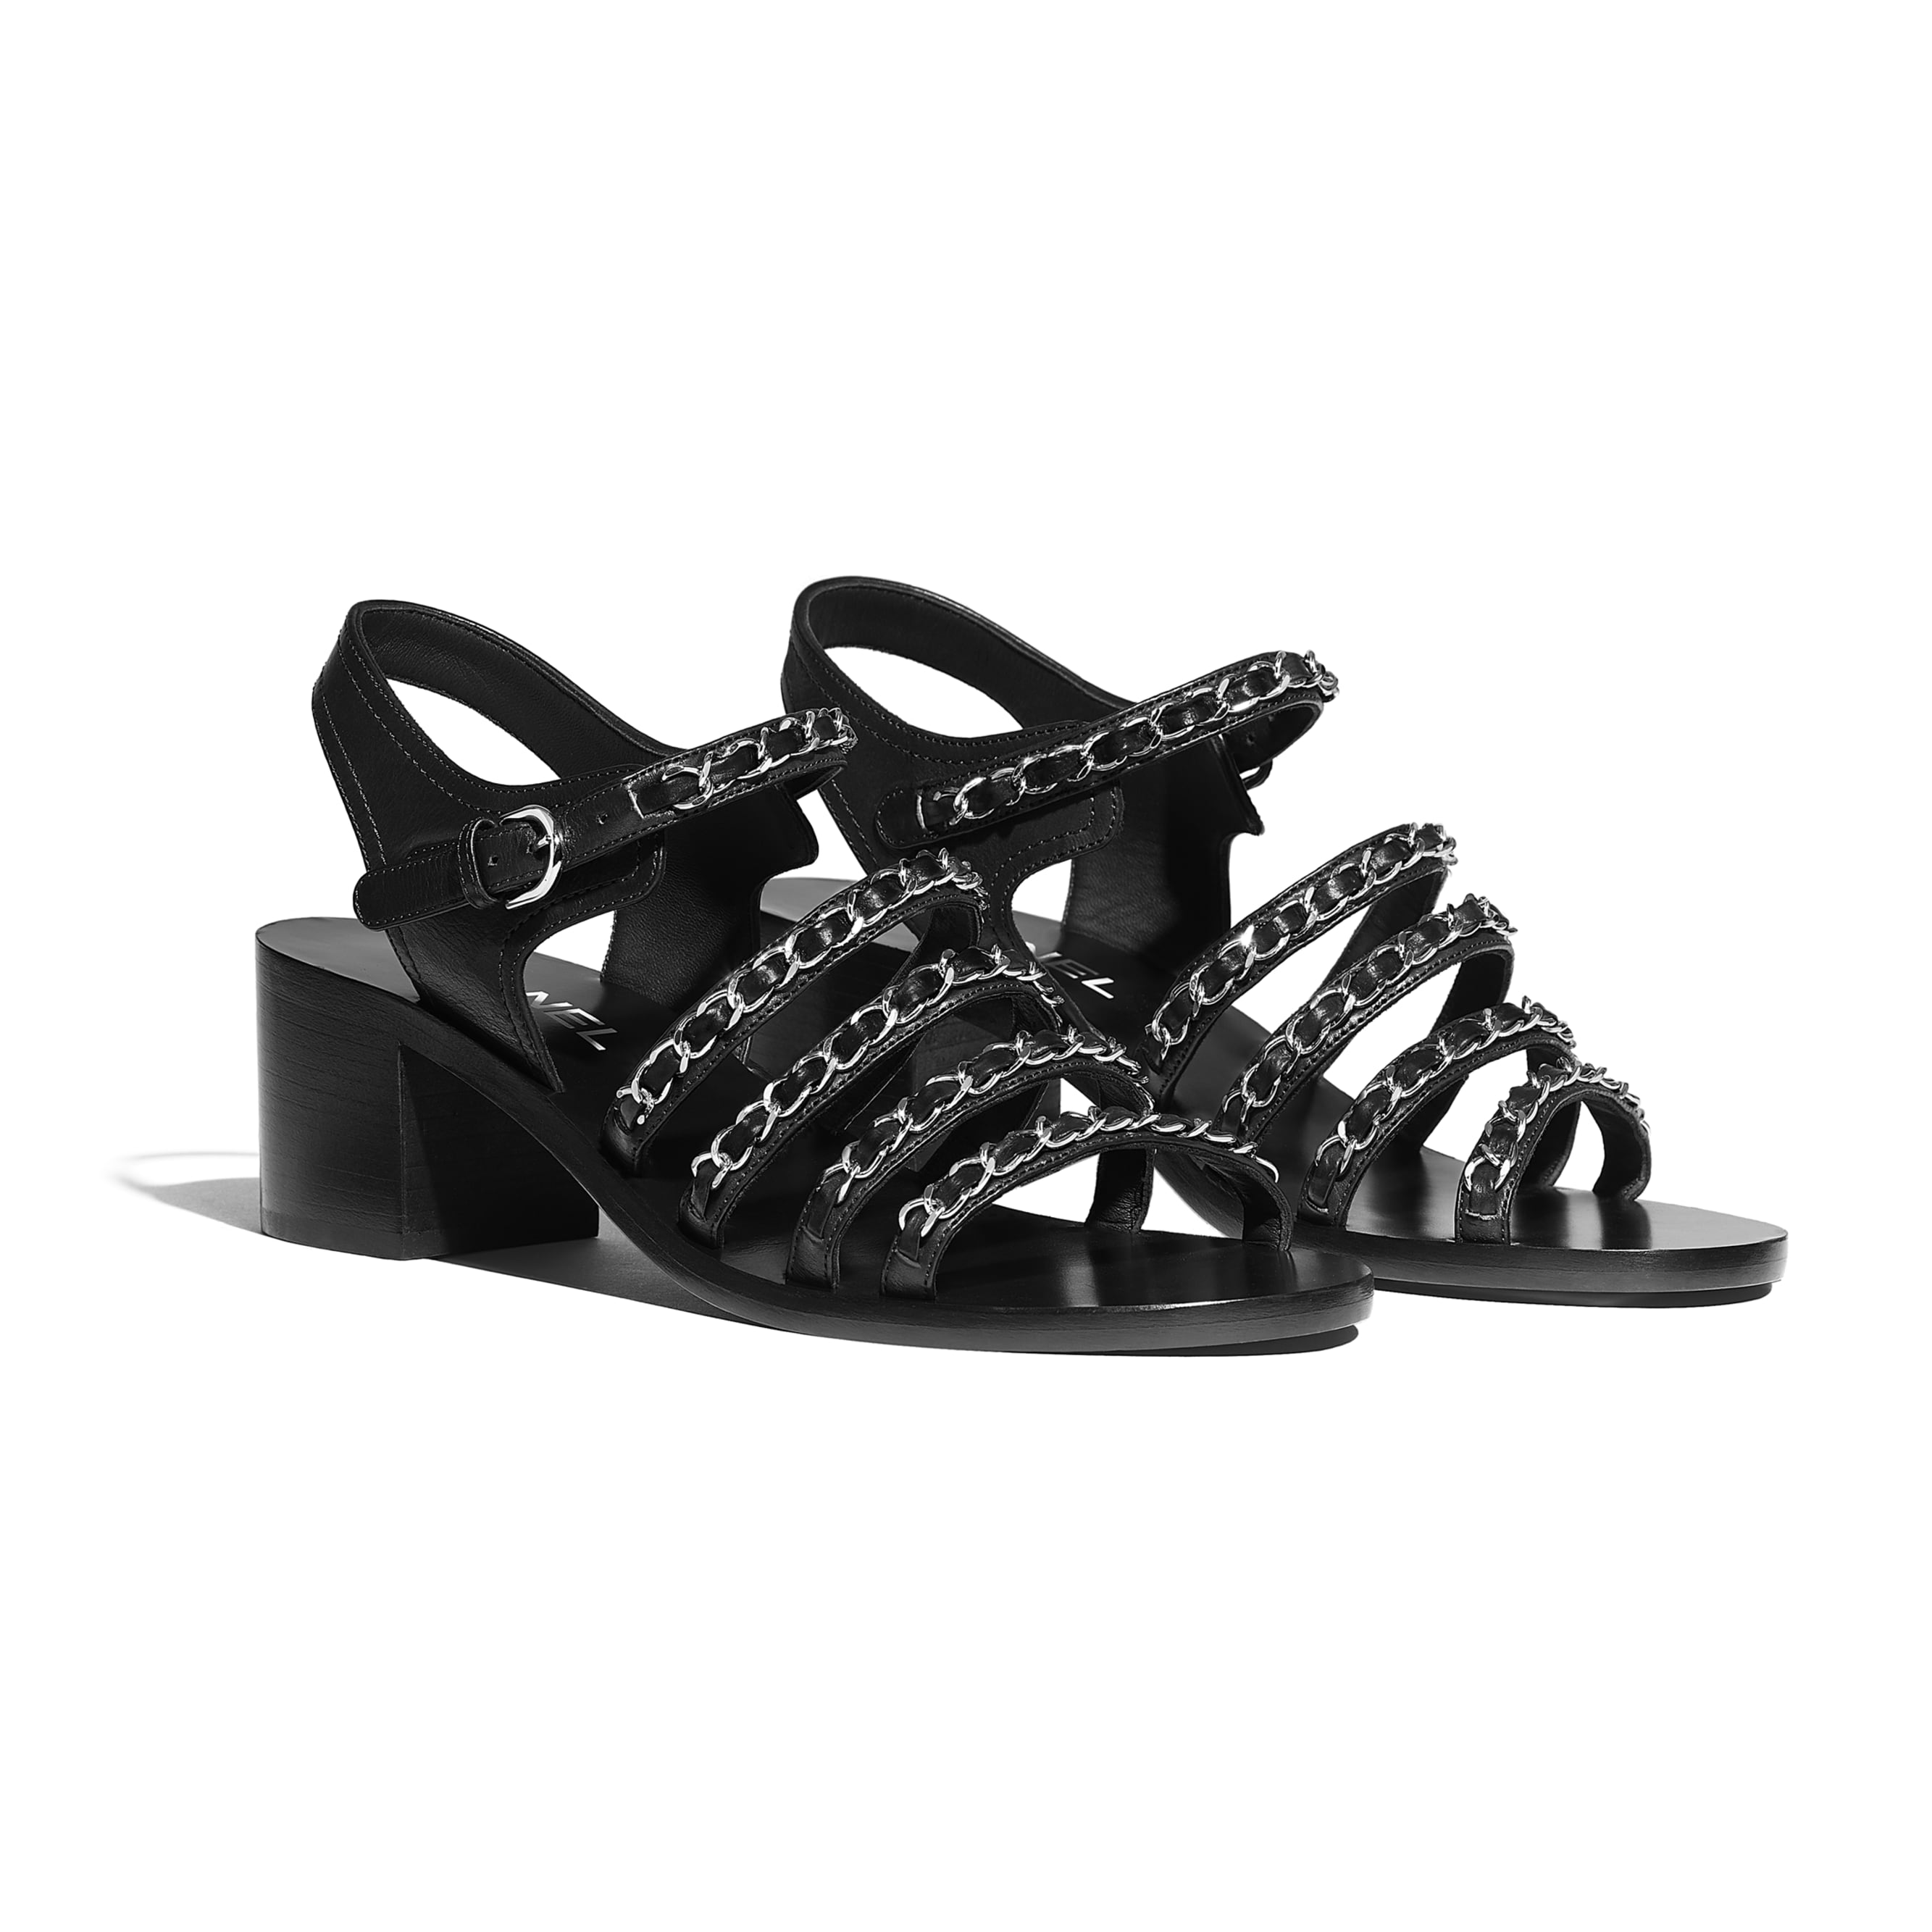 Sandals - Black - Calfskin - Alternative view - see standard sized version